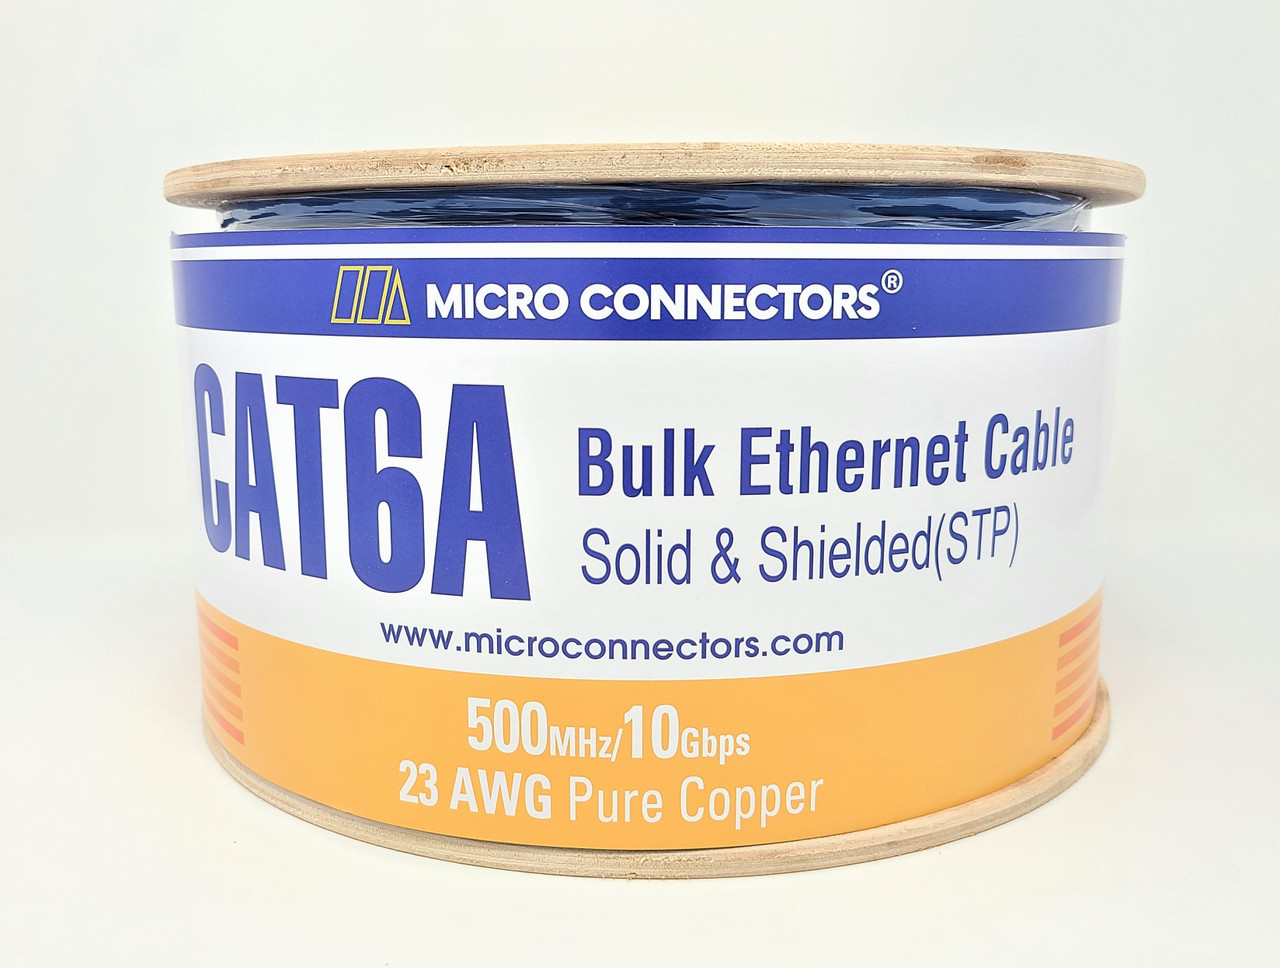 115 Ft STP Cat6a Ethernet Patch Cable SuperEcable Made in USA 23 AWG UL CMR- BLUE